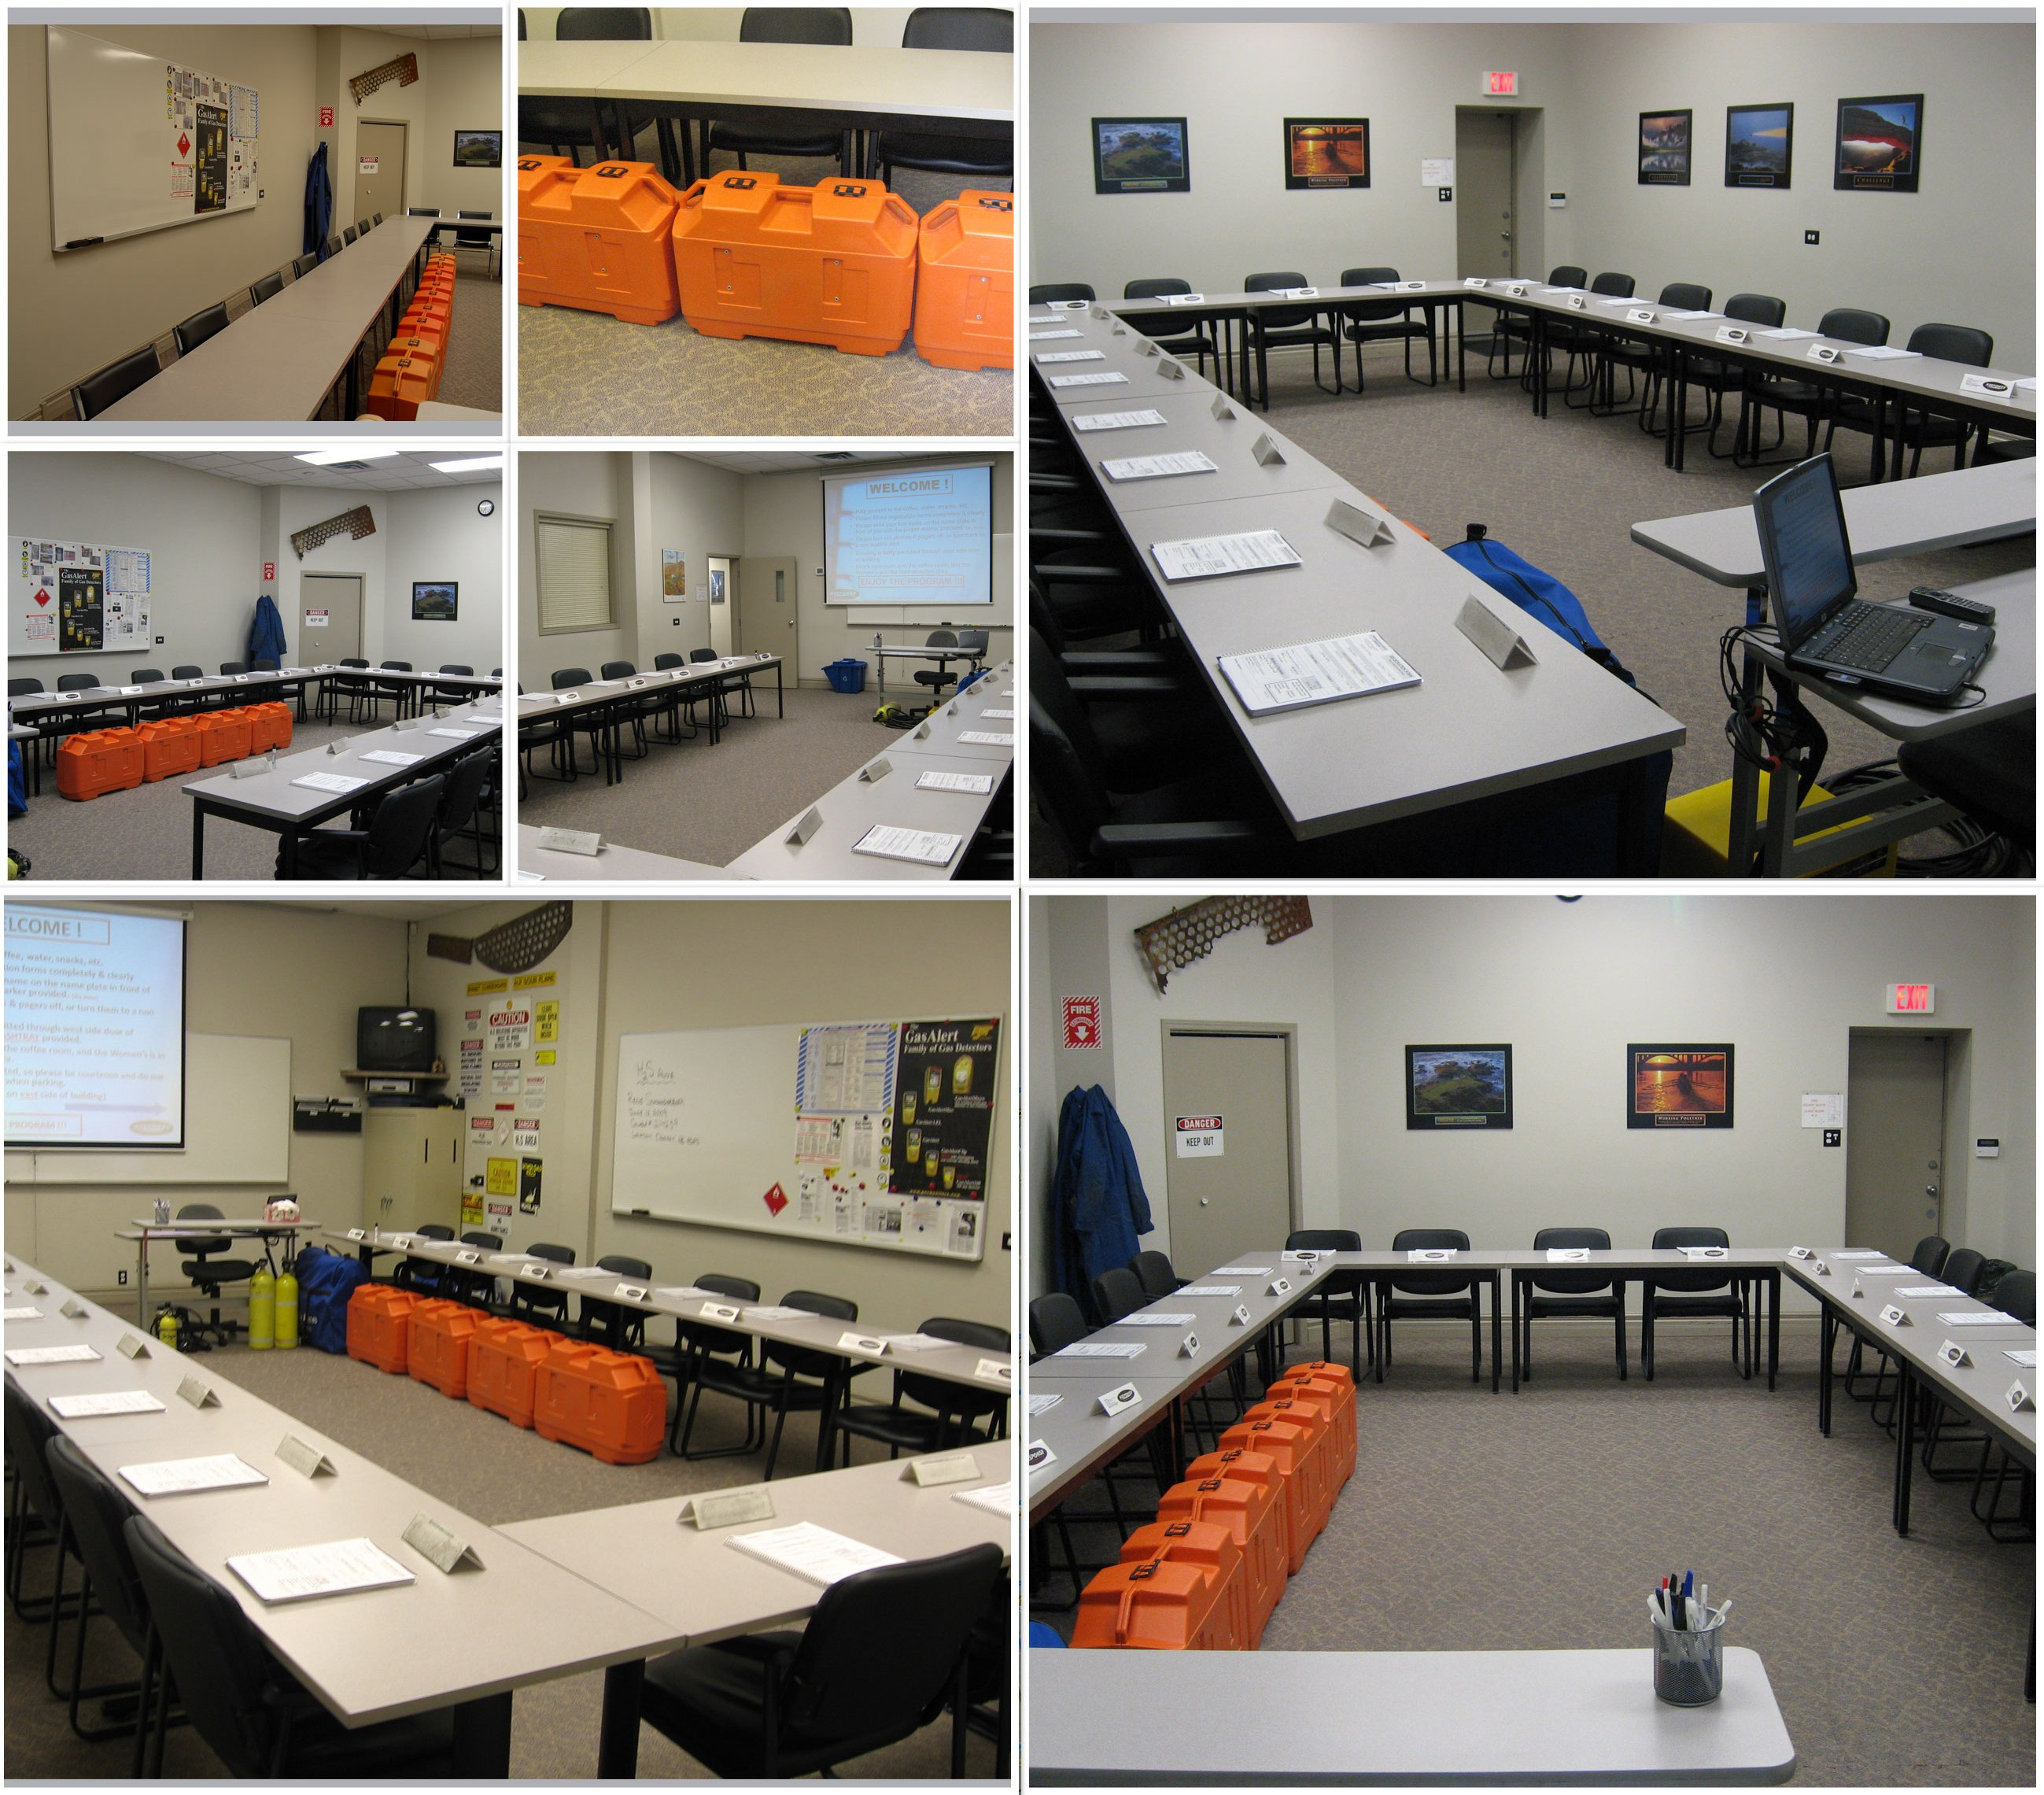 Classroom-3-Collage